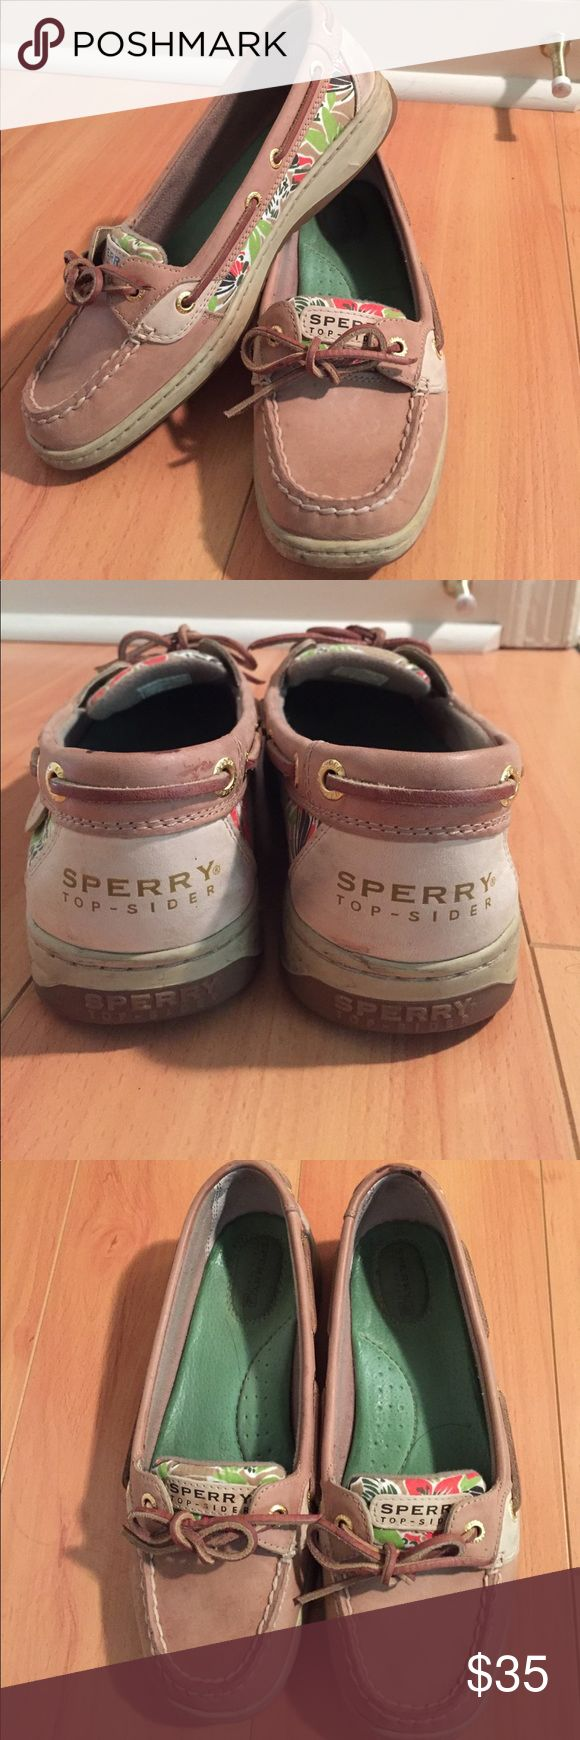 Sperry Boat Shoes Size 8 sperry boat shoes with a floral exterior pattern. Sperry Top-Sider Shoes Flats & Loafers